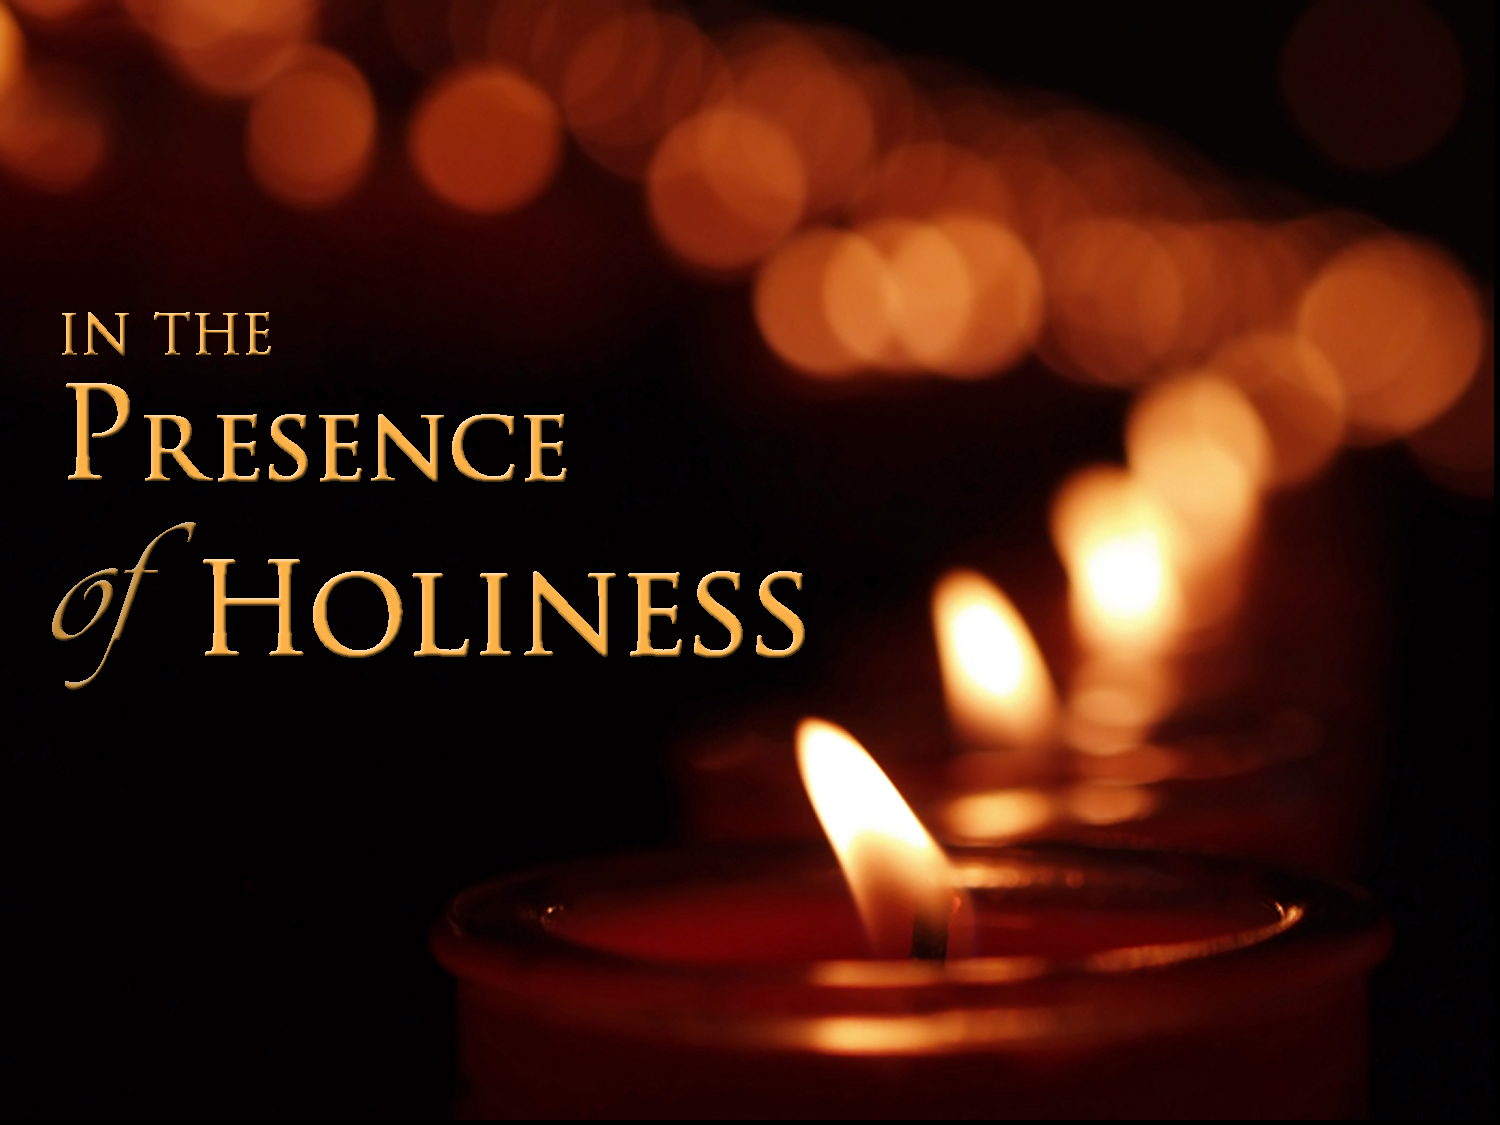 Holiness or wholeness lorne mitchell s blog